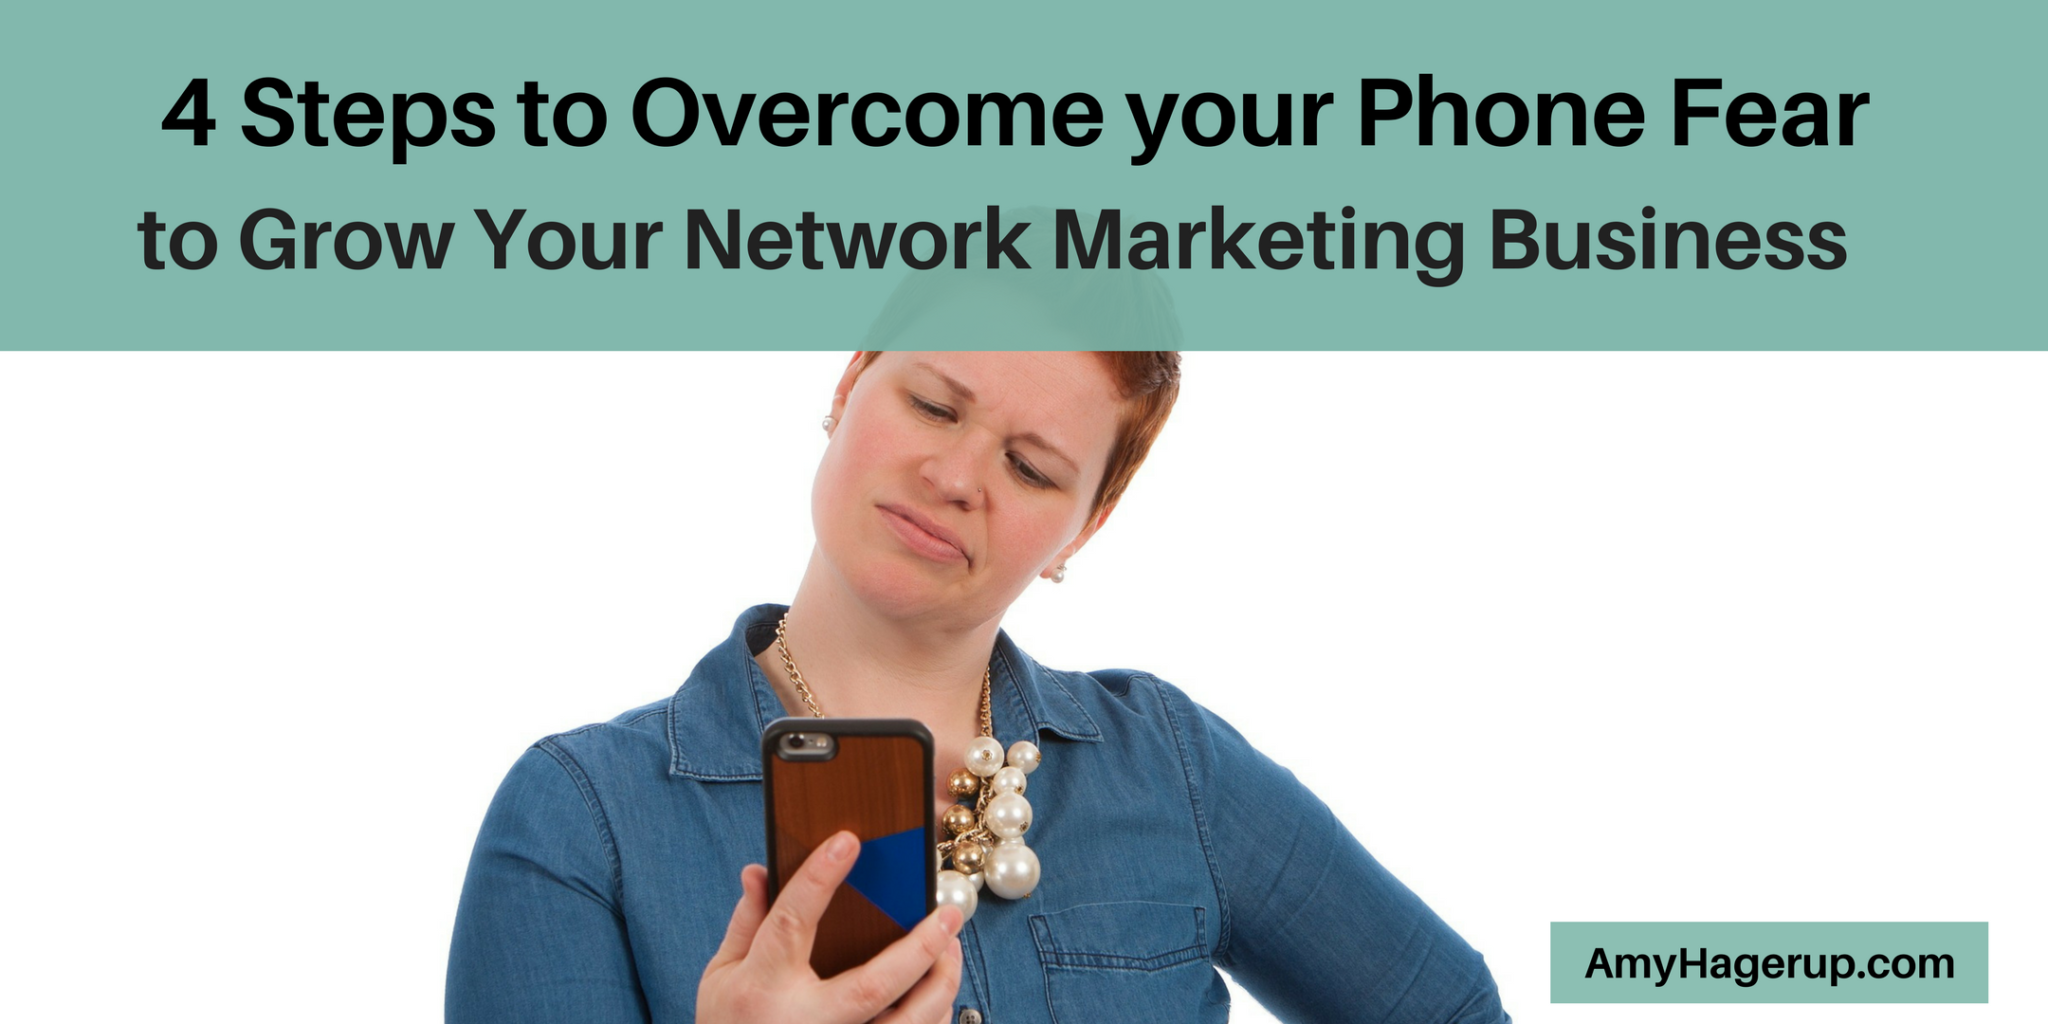 Here are 4 steps to overcoming your phone fear when it comes to growing your network marketing business.